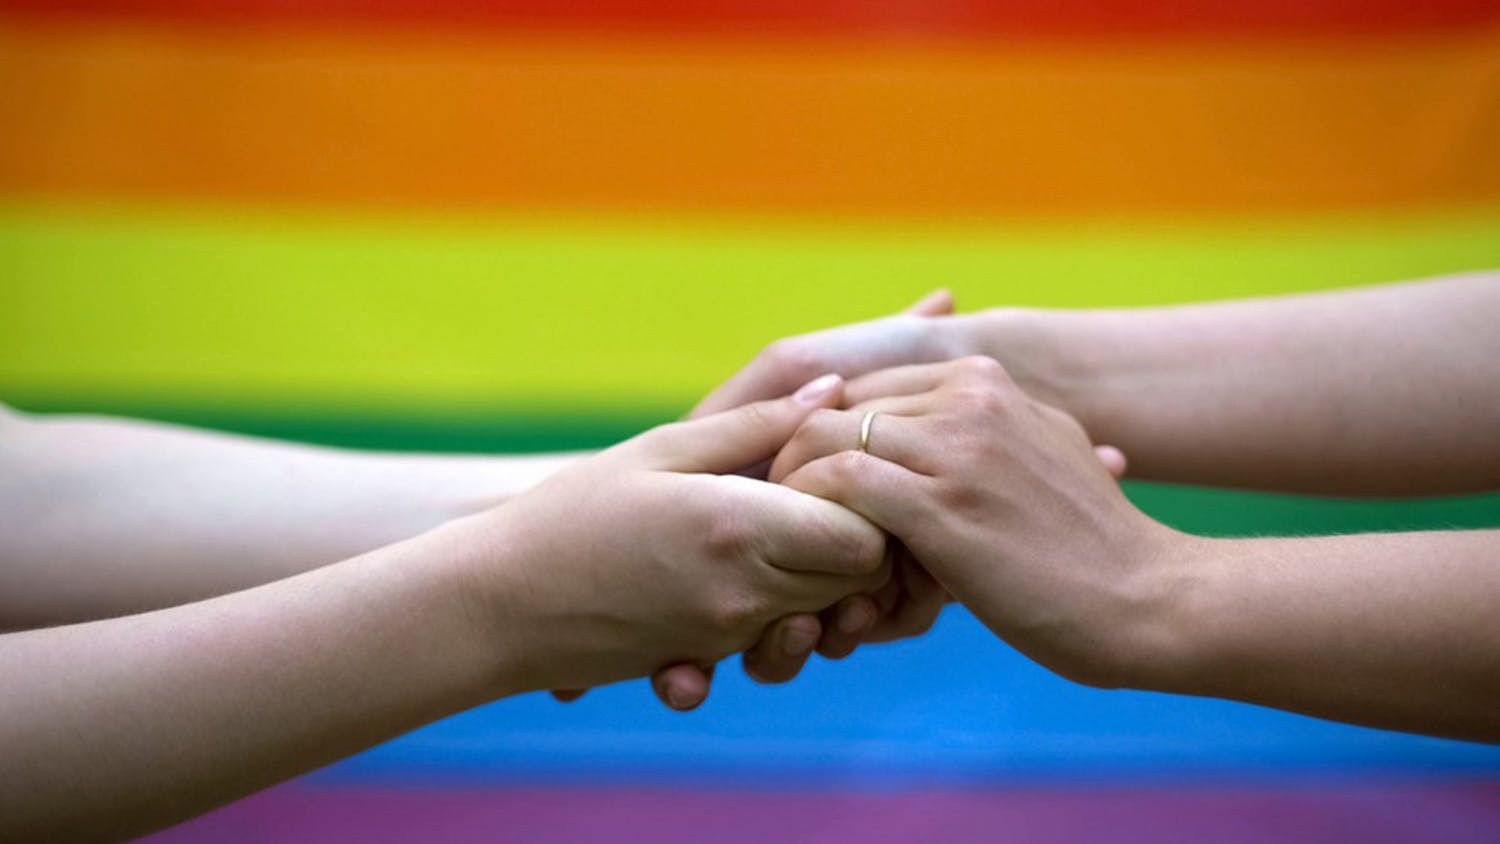 Gay wedding, rainbow flag on background, same-sex marriage, minority rights